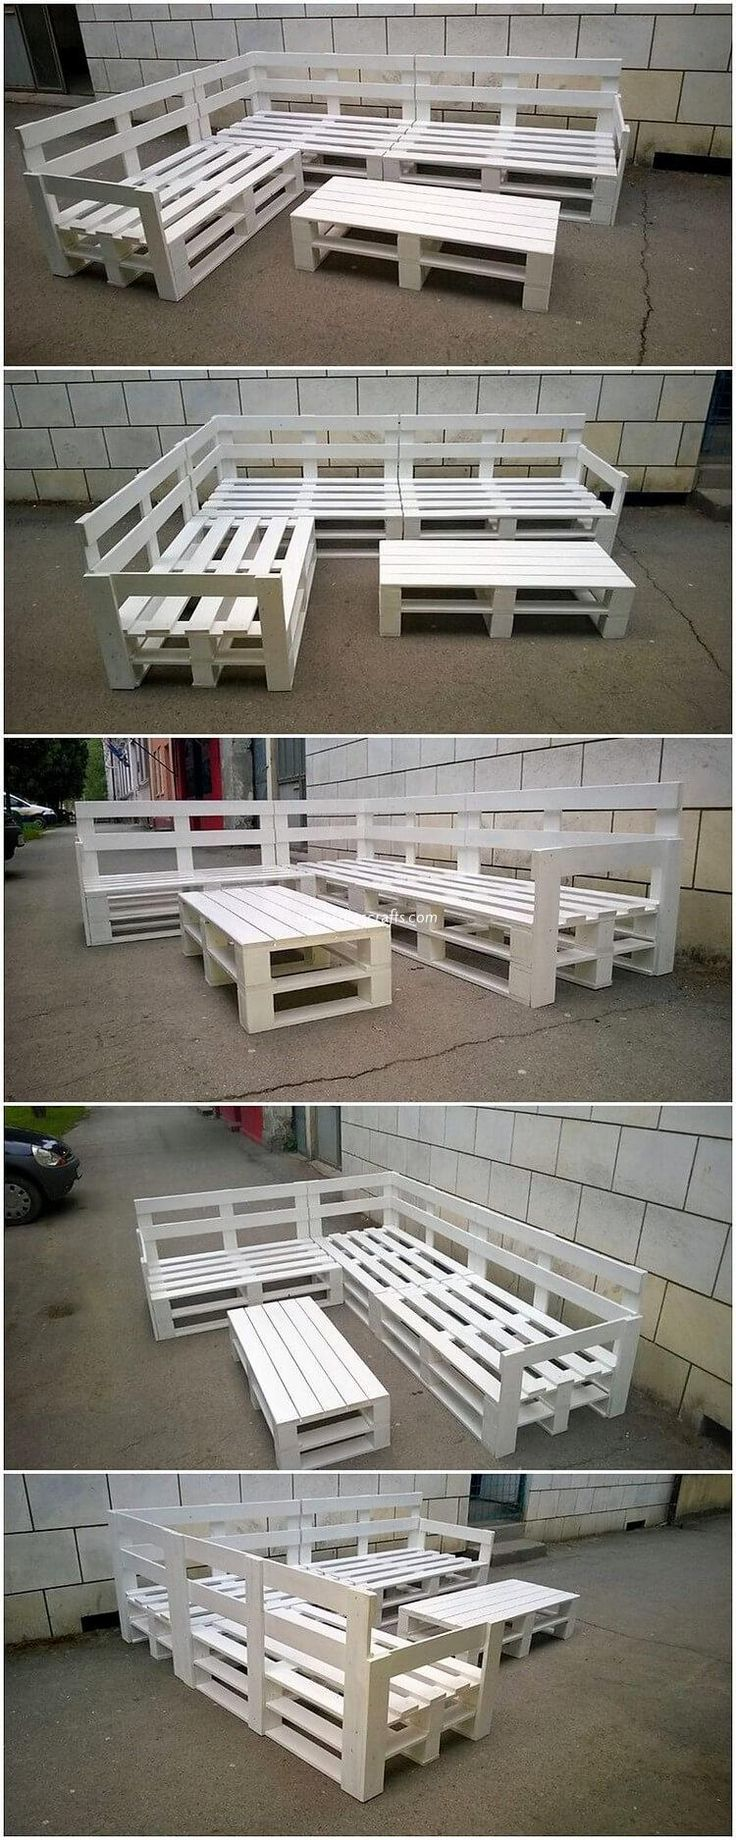 Creative Ideas for Repurposing Old Wooden Pallets - #creative #Ideas #pallets #Repurposing #Wooden